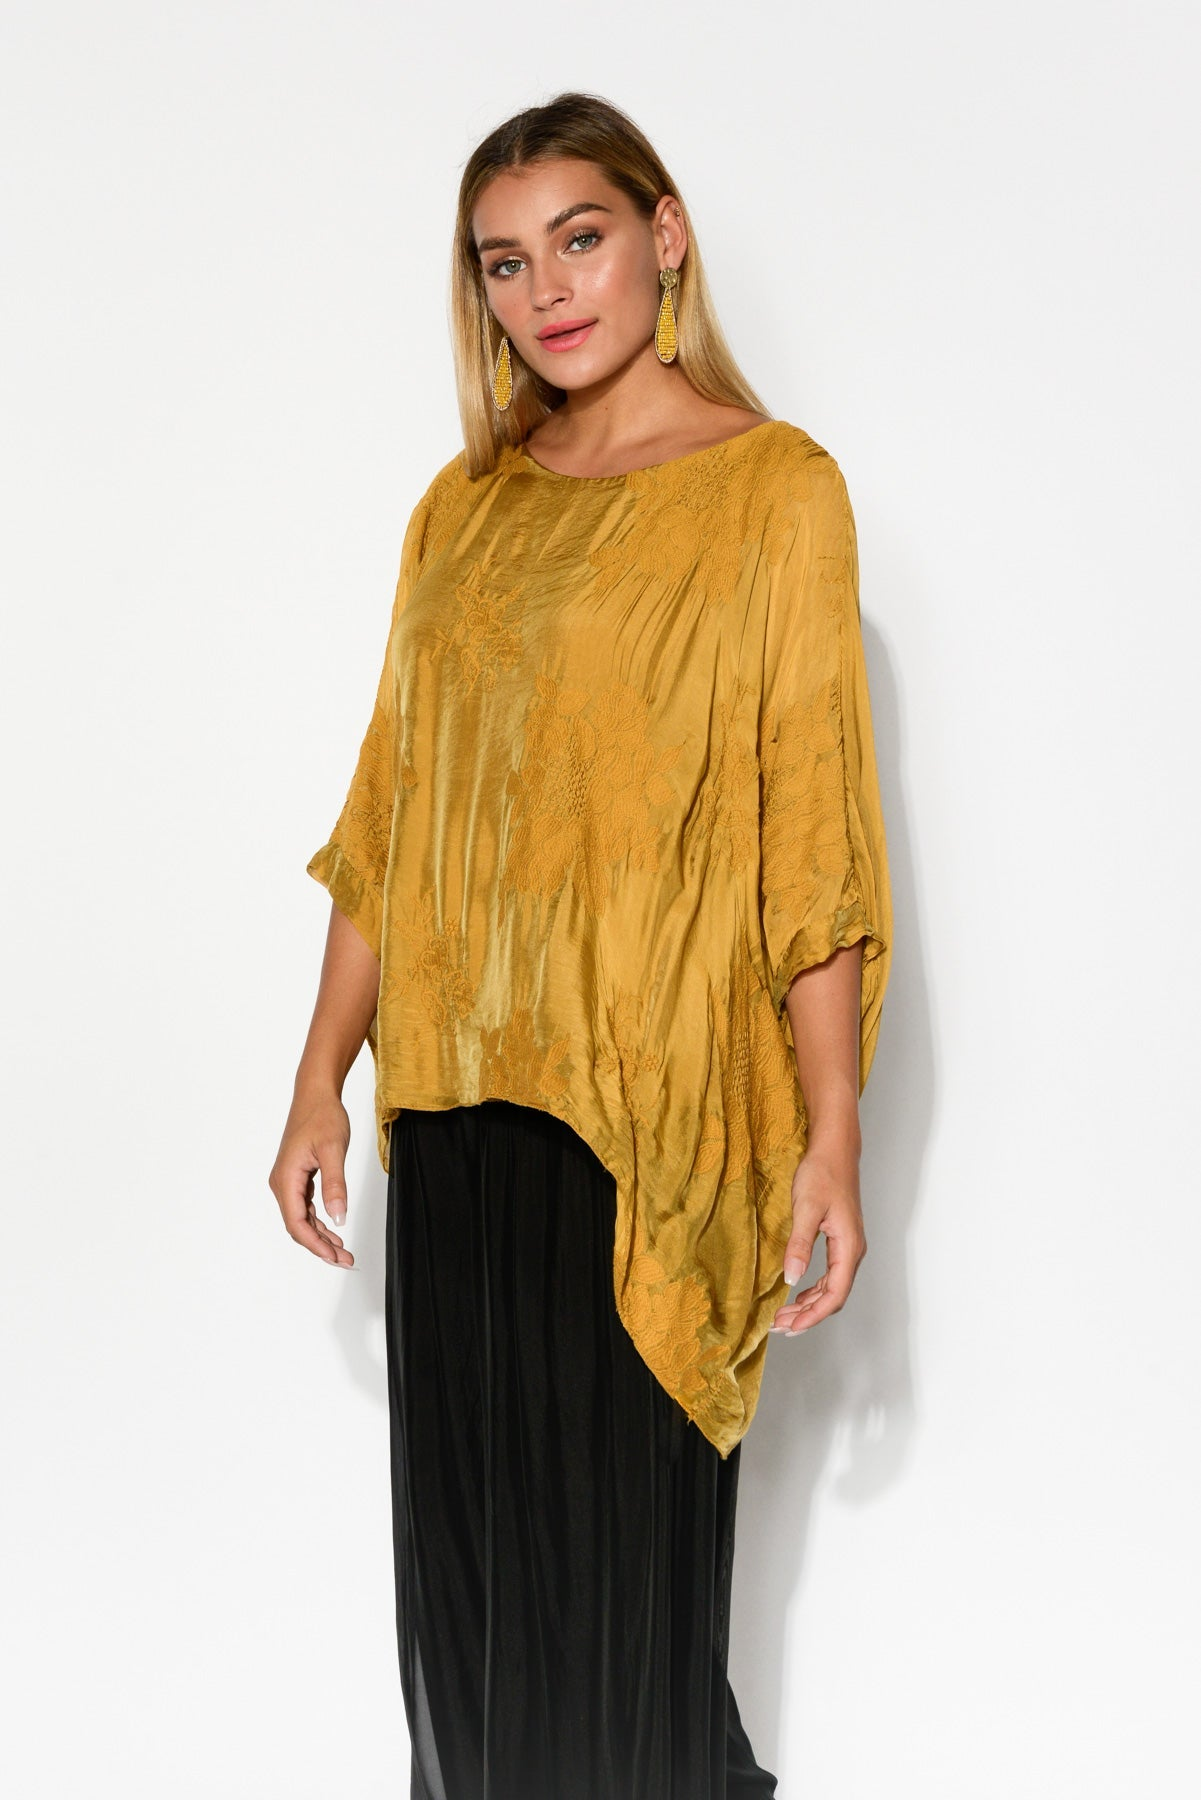 Caruso Gold Silk Layer Top – Blue Bungalow NZ